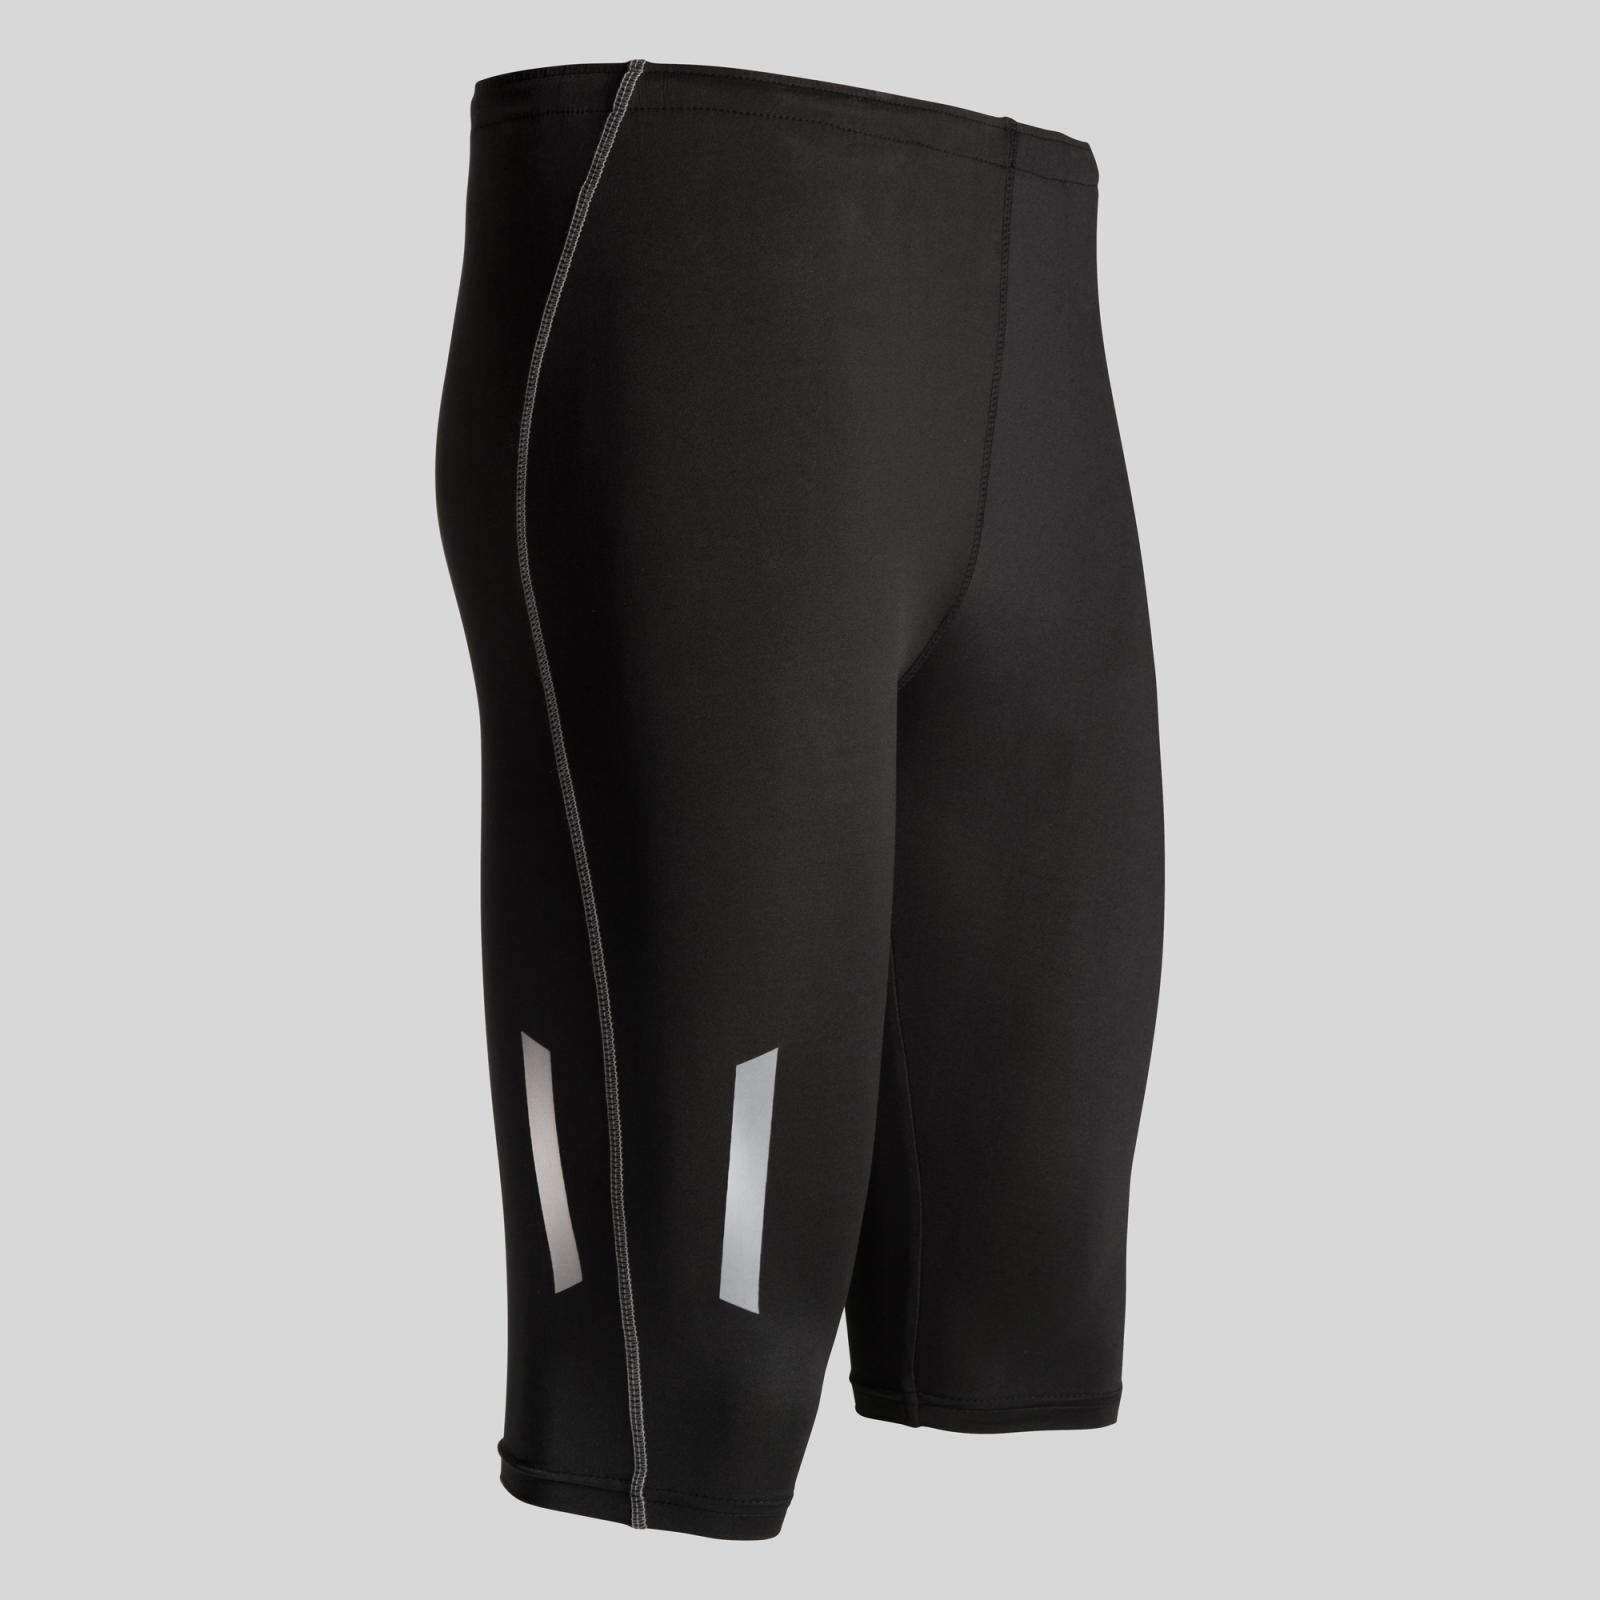 PANTALON CORTO ATHLETIC (PA0493)